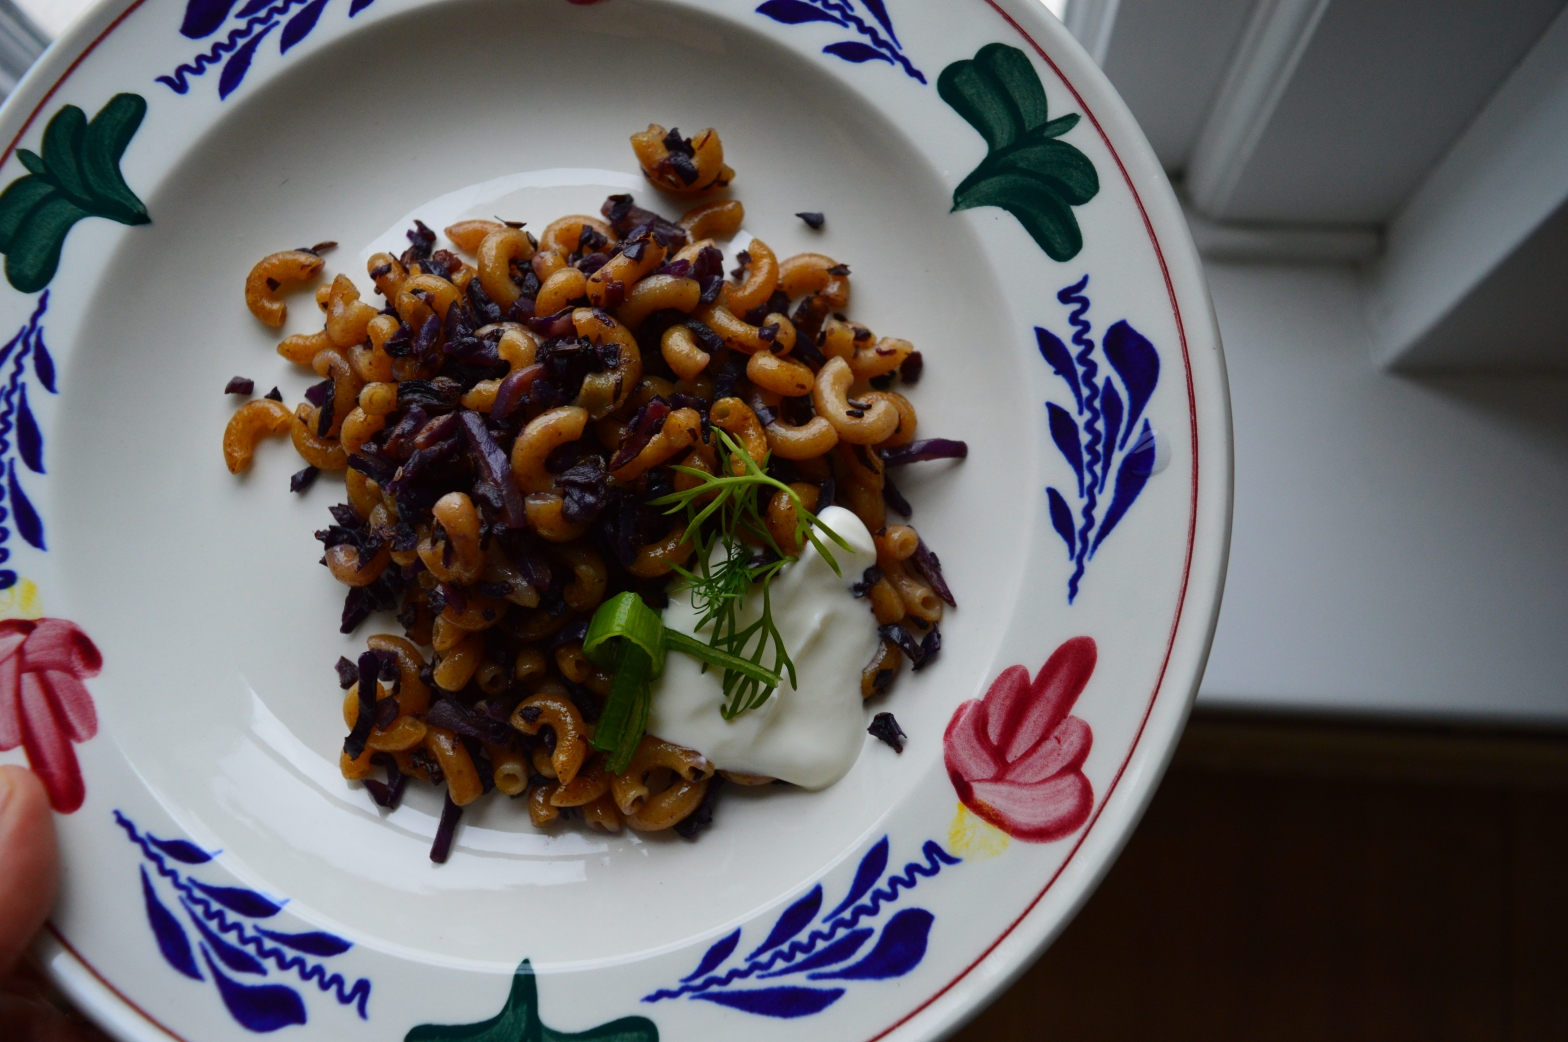 photo of a flower porcelain dish filled with purple cabbage, pasta, dill and greek yogurt